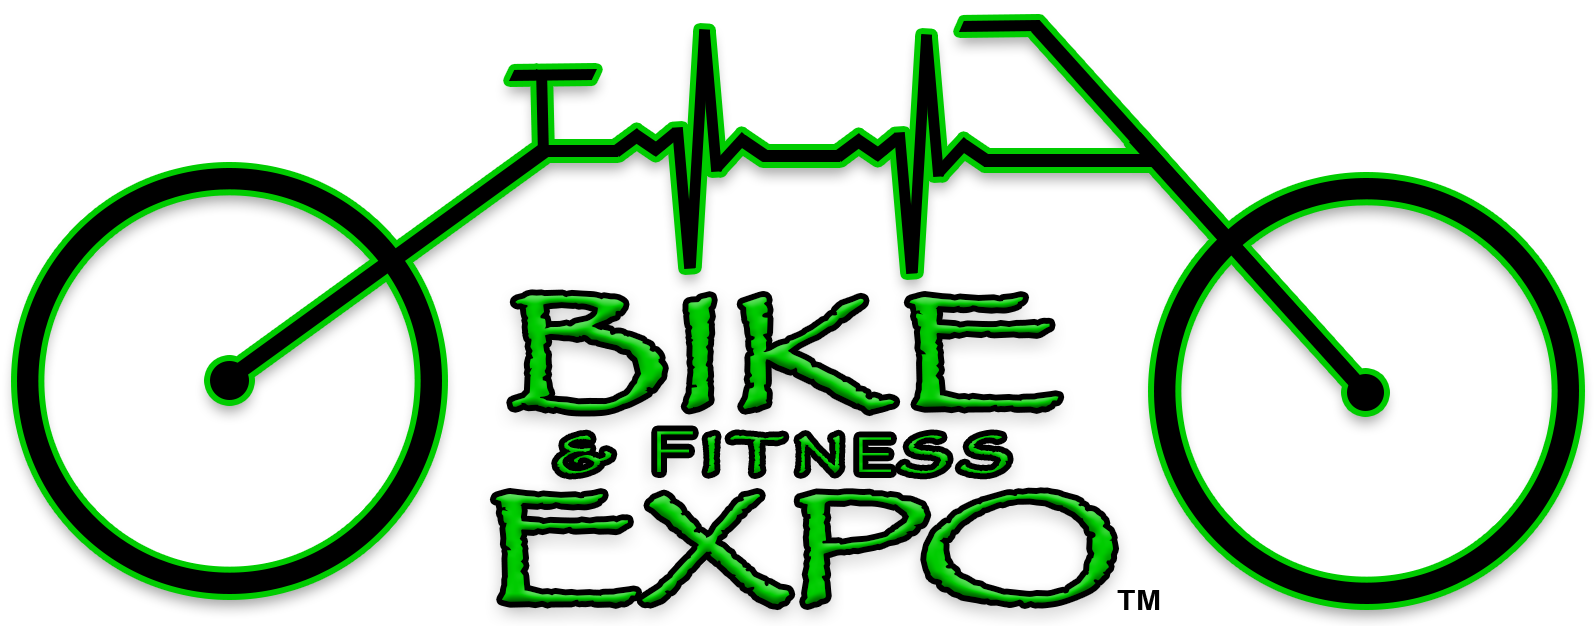 Bike & Fitness Expo Logo 6-crop-TM